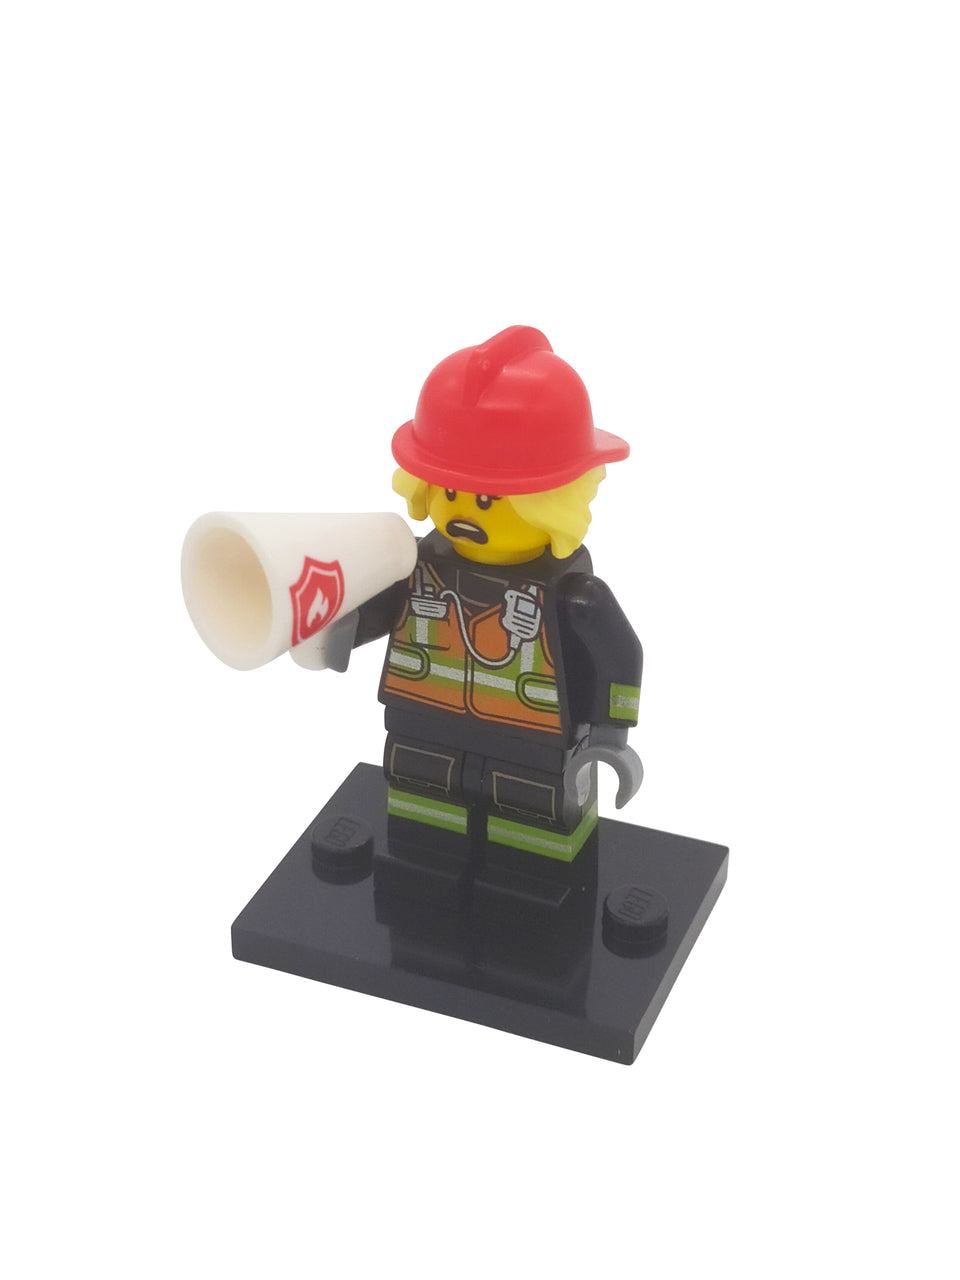 LEGO 71025 Lego Series 19 Minifigures - Lady Fire Chief